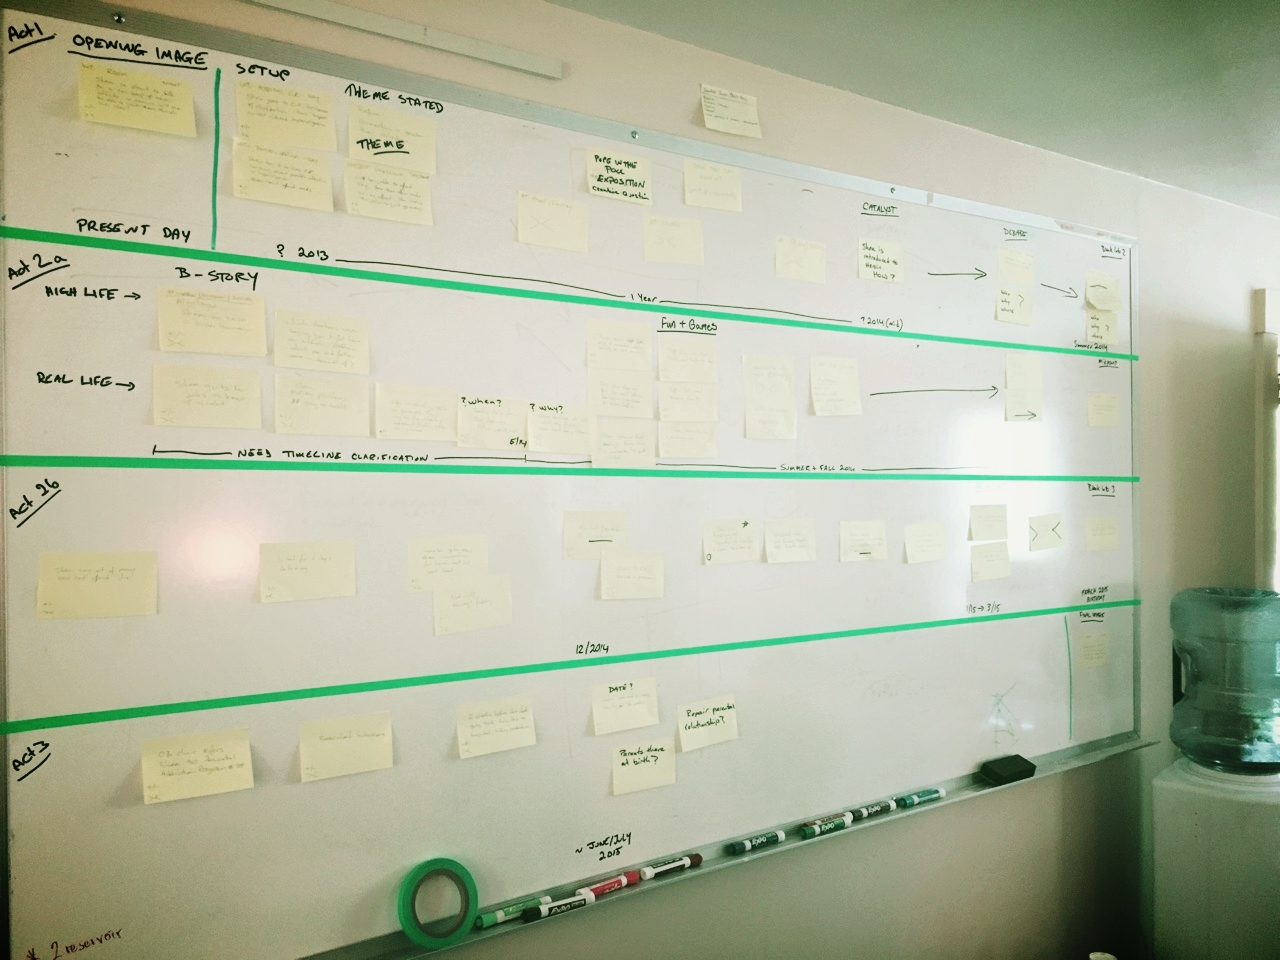 A storyline development board for a documentary.